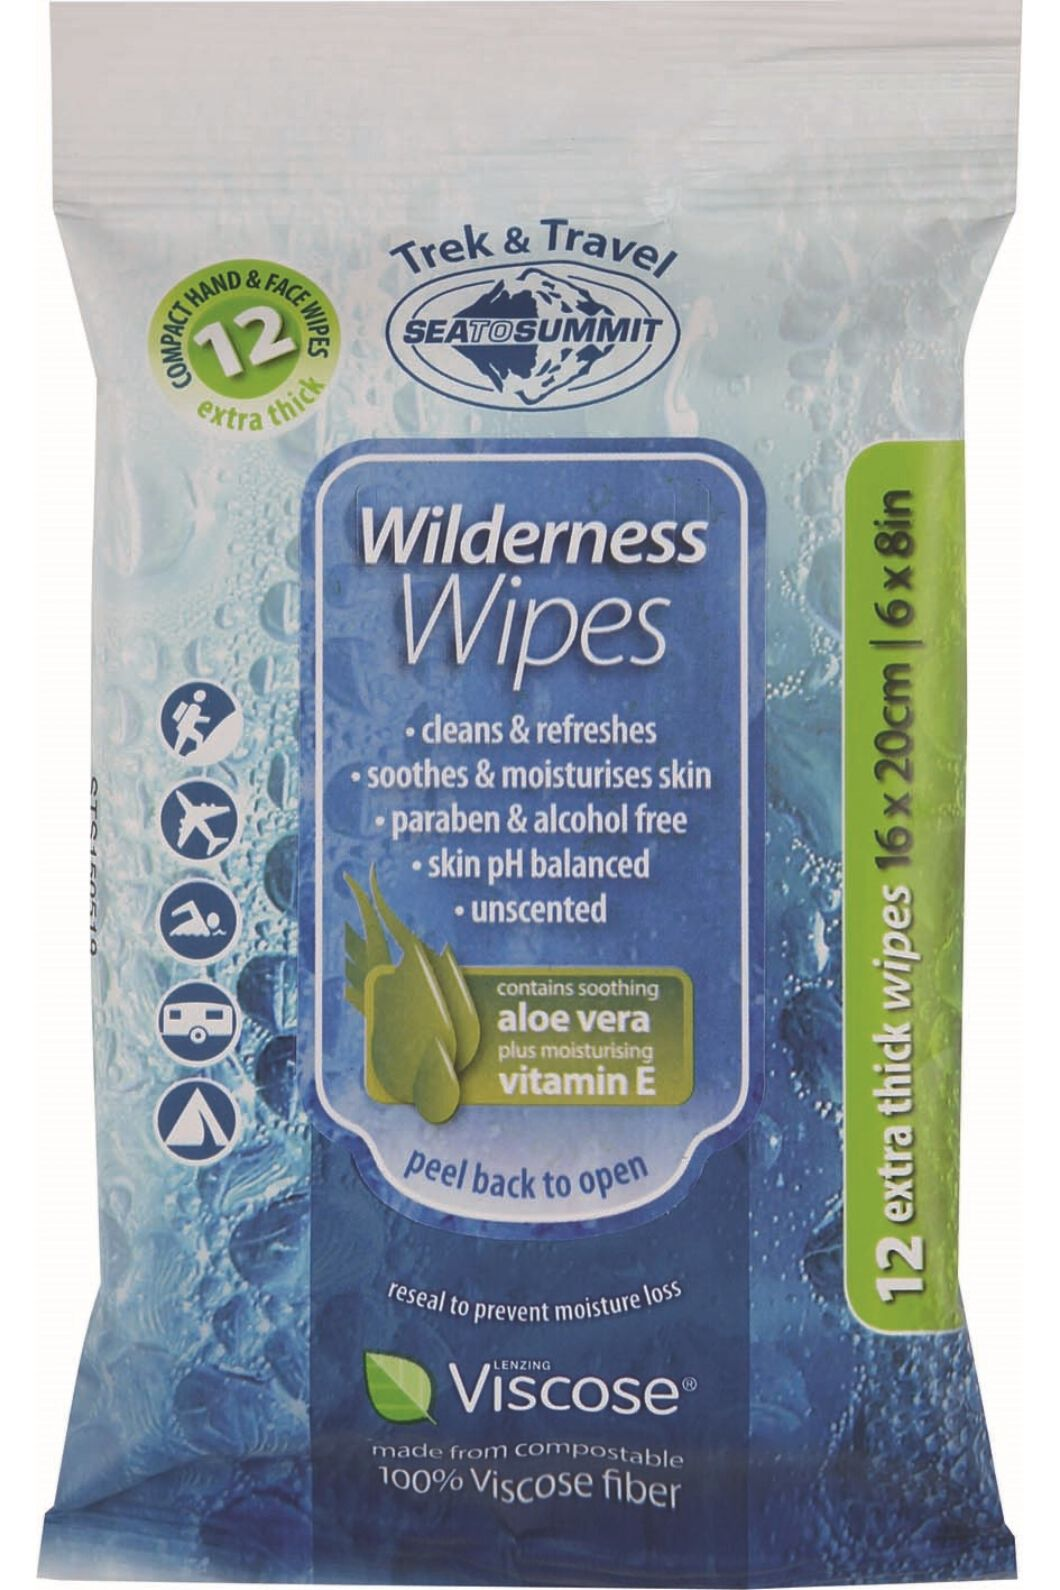 Sea To Summit Wilderness Wipes Compact, None, hi-res